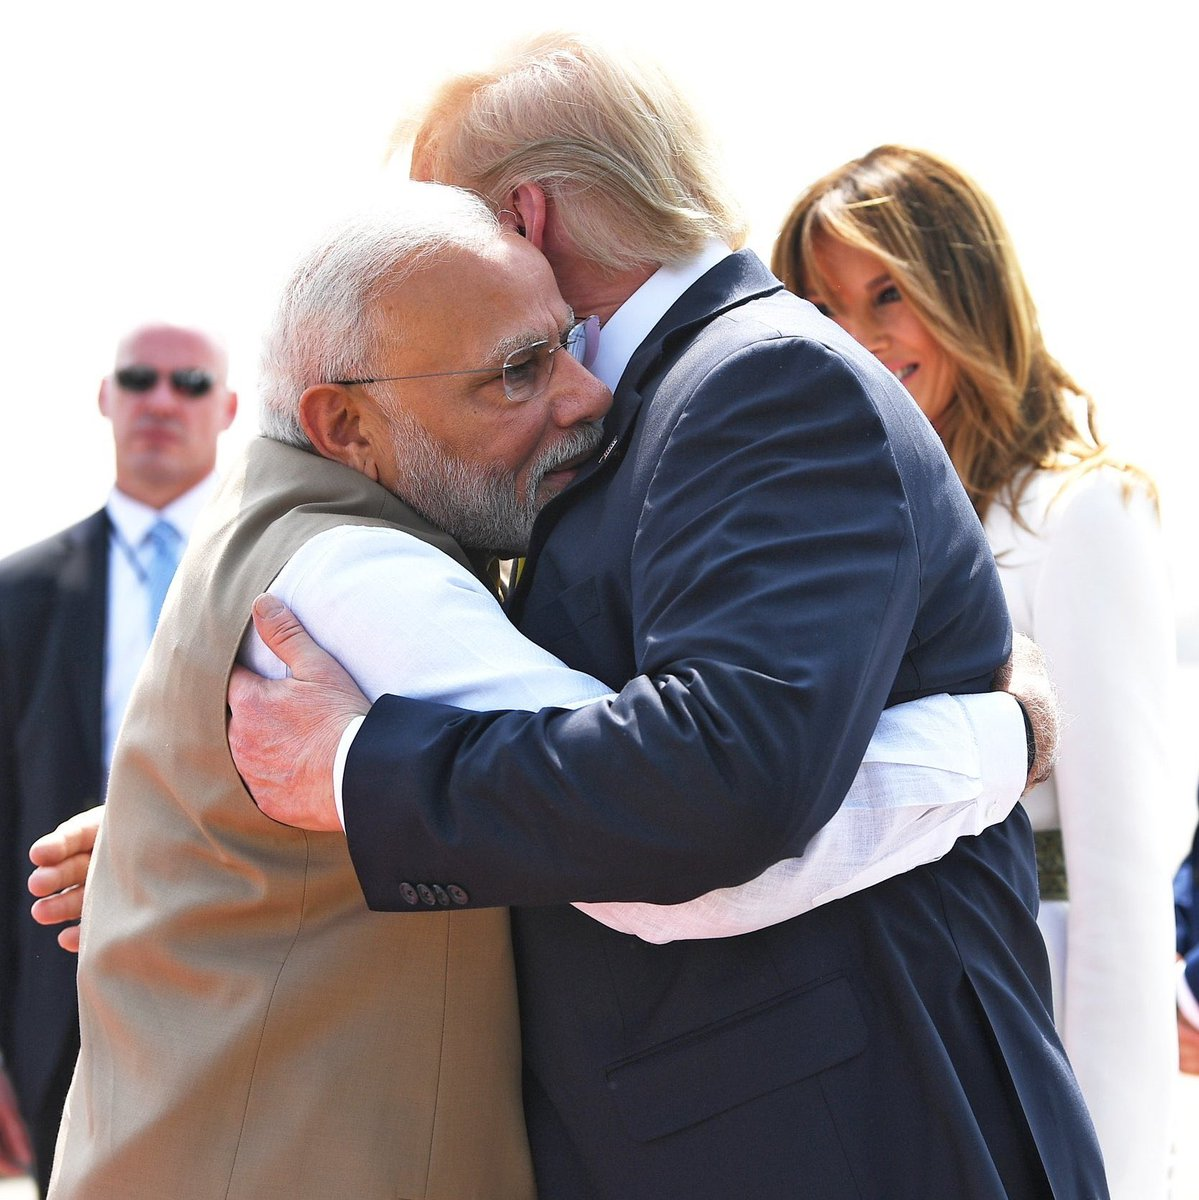 The world is realizing how much people in India love the president of USA @realDonaldTrump ❤️🇺🇸 ... so much different than Trudeau's visit to India #IndiaWelcomesTrump